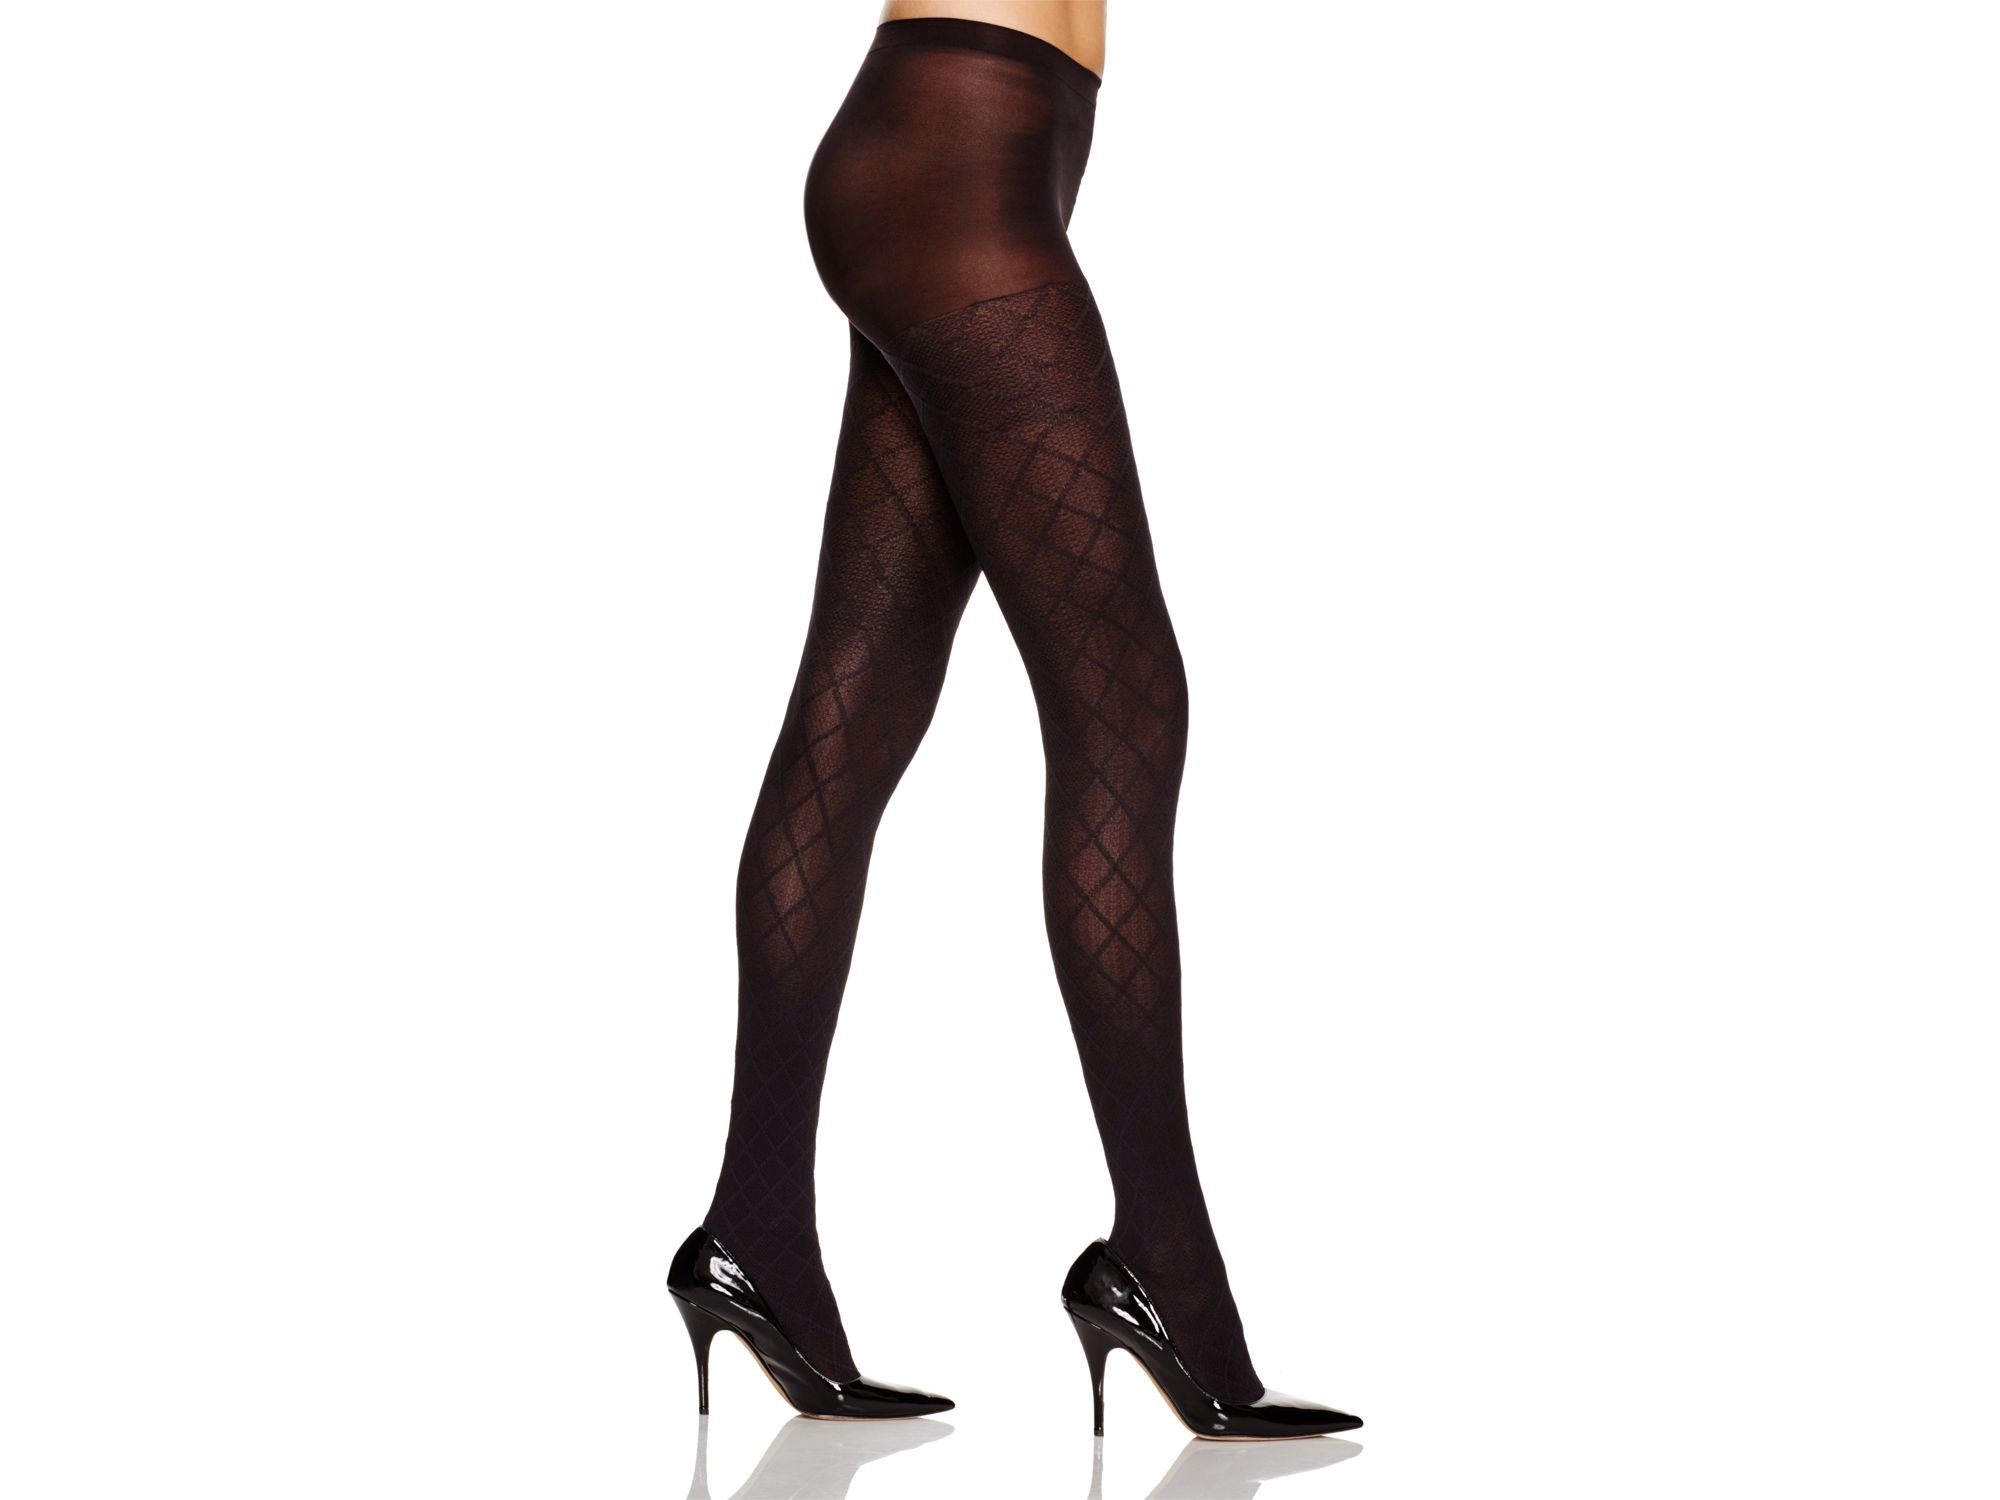 489c79aeff2 Hue Diamond Texture Control Top Tights in Black - Lyst